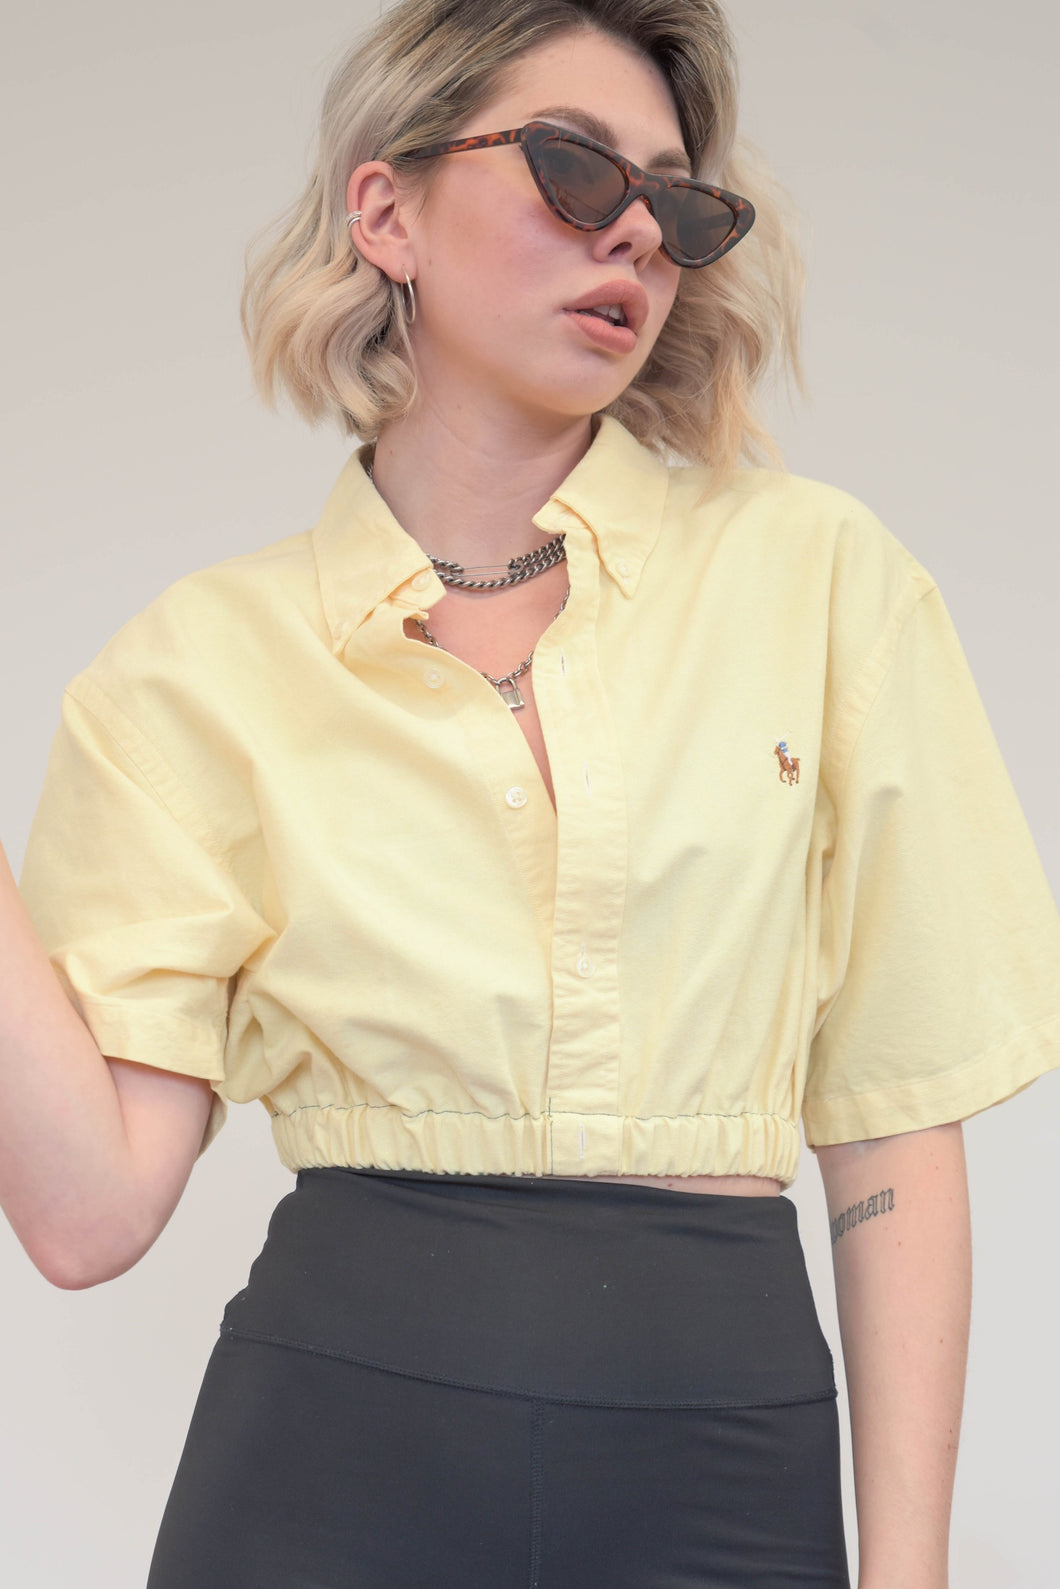 Vintage Reworked Ralph Lauren Crop Top Shirt in Yellow in S